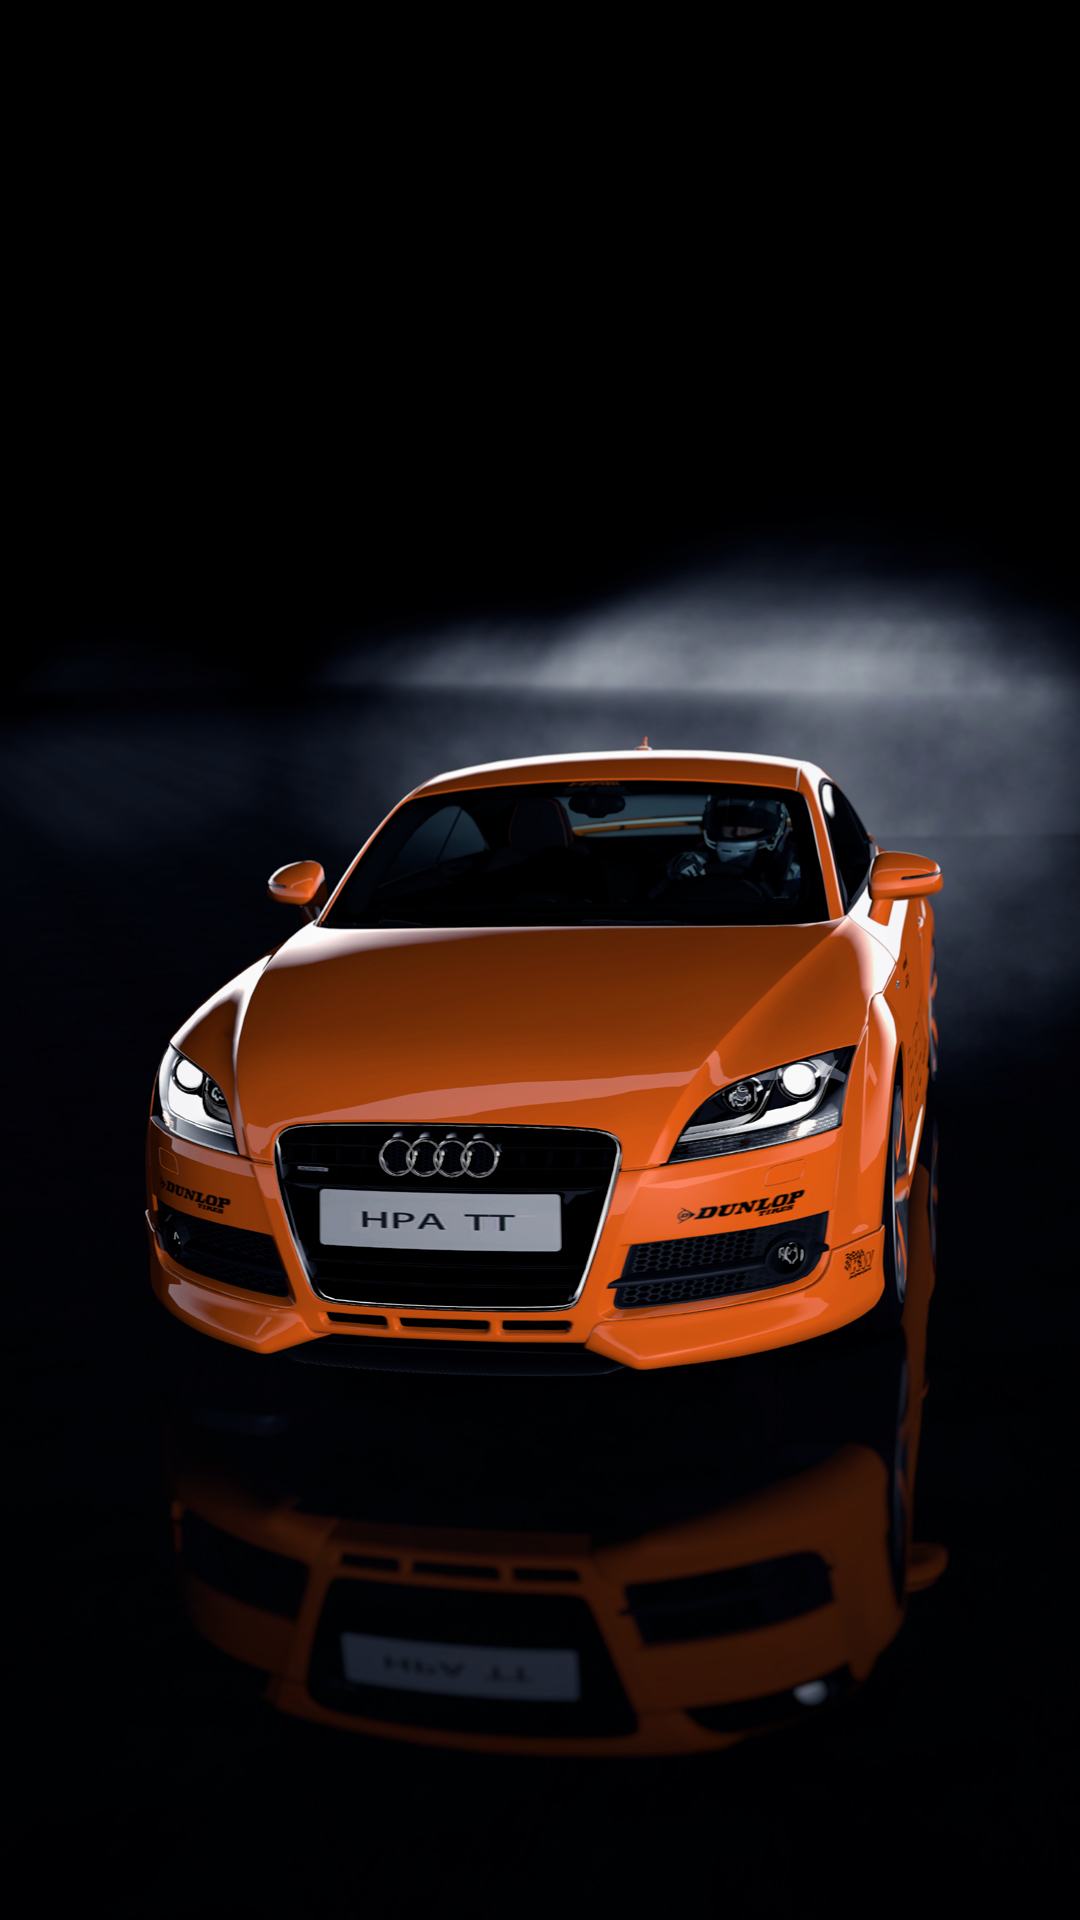 Audi TT htc one wallpaper